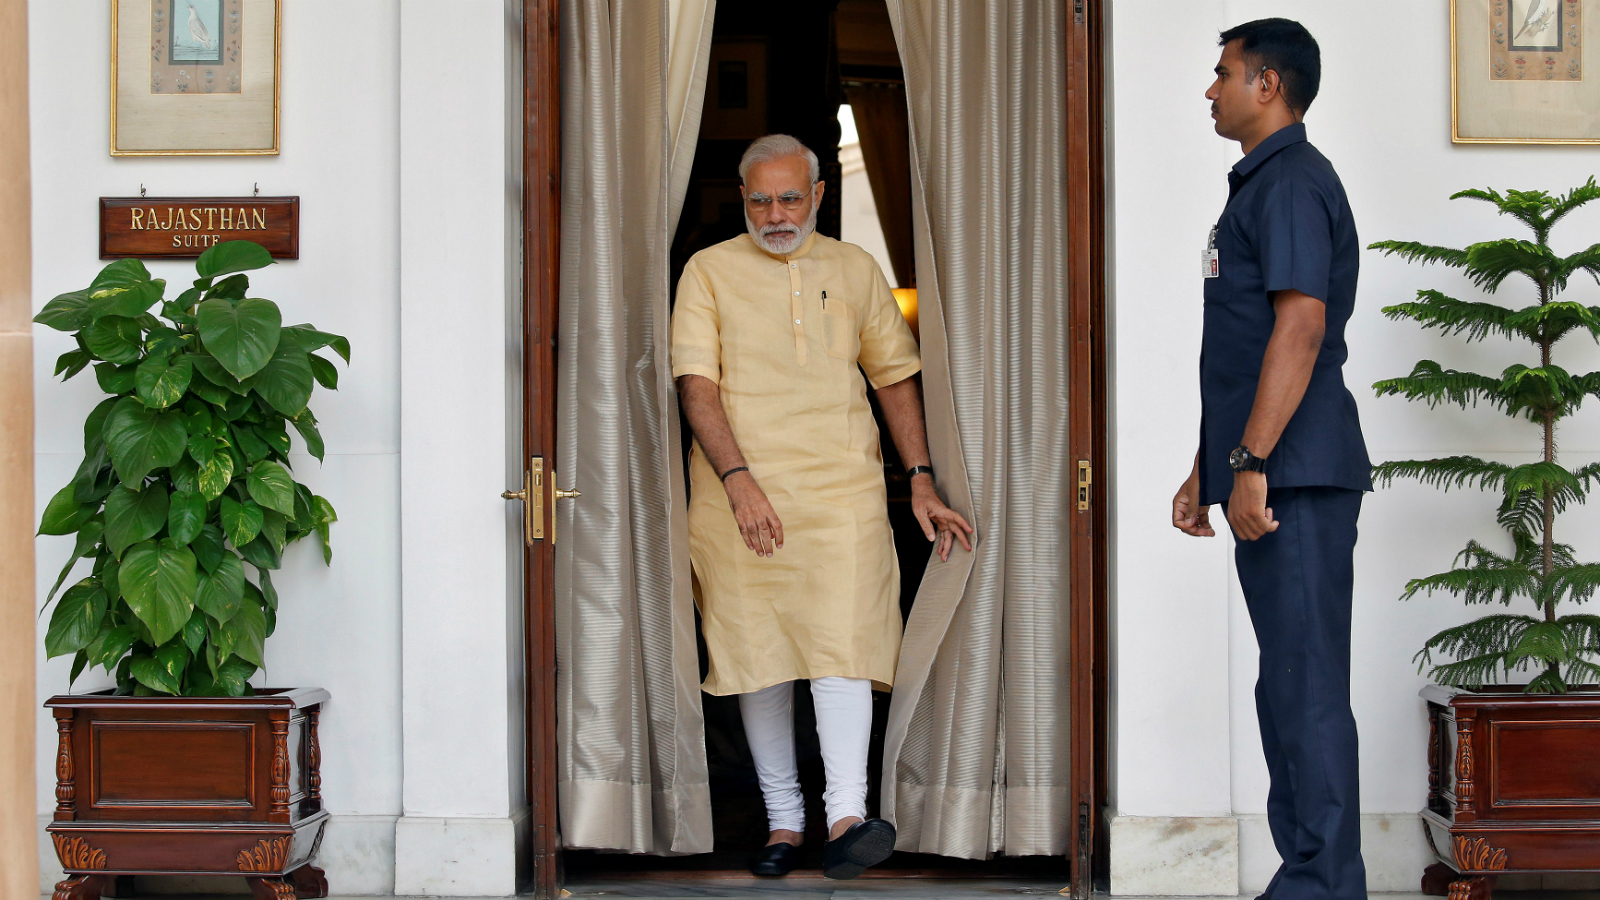 India's Prime Minister Narendra Modi makes his way to greet Afghan President Ashraf Ghani (not pictured) inside Hyderabad House in Delhi, India September 14, 2016.